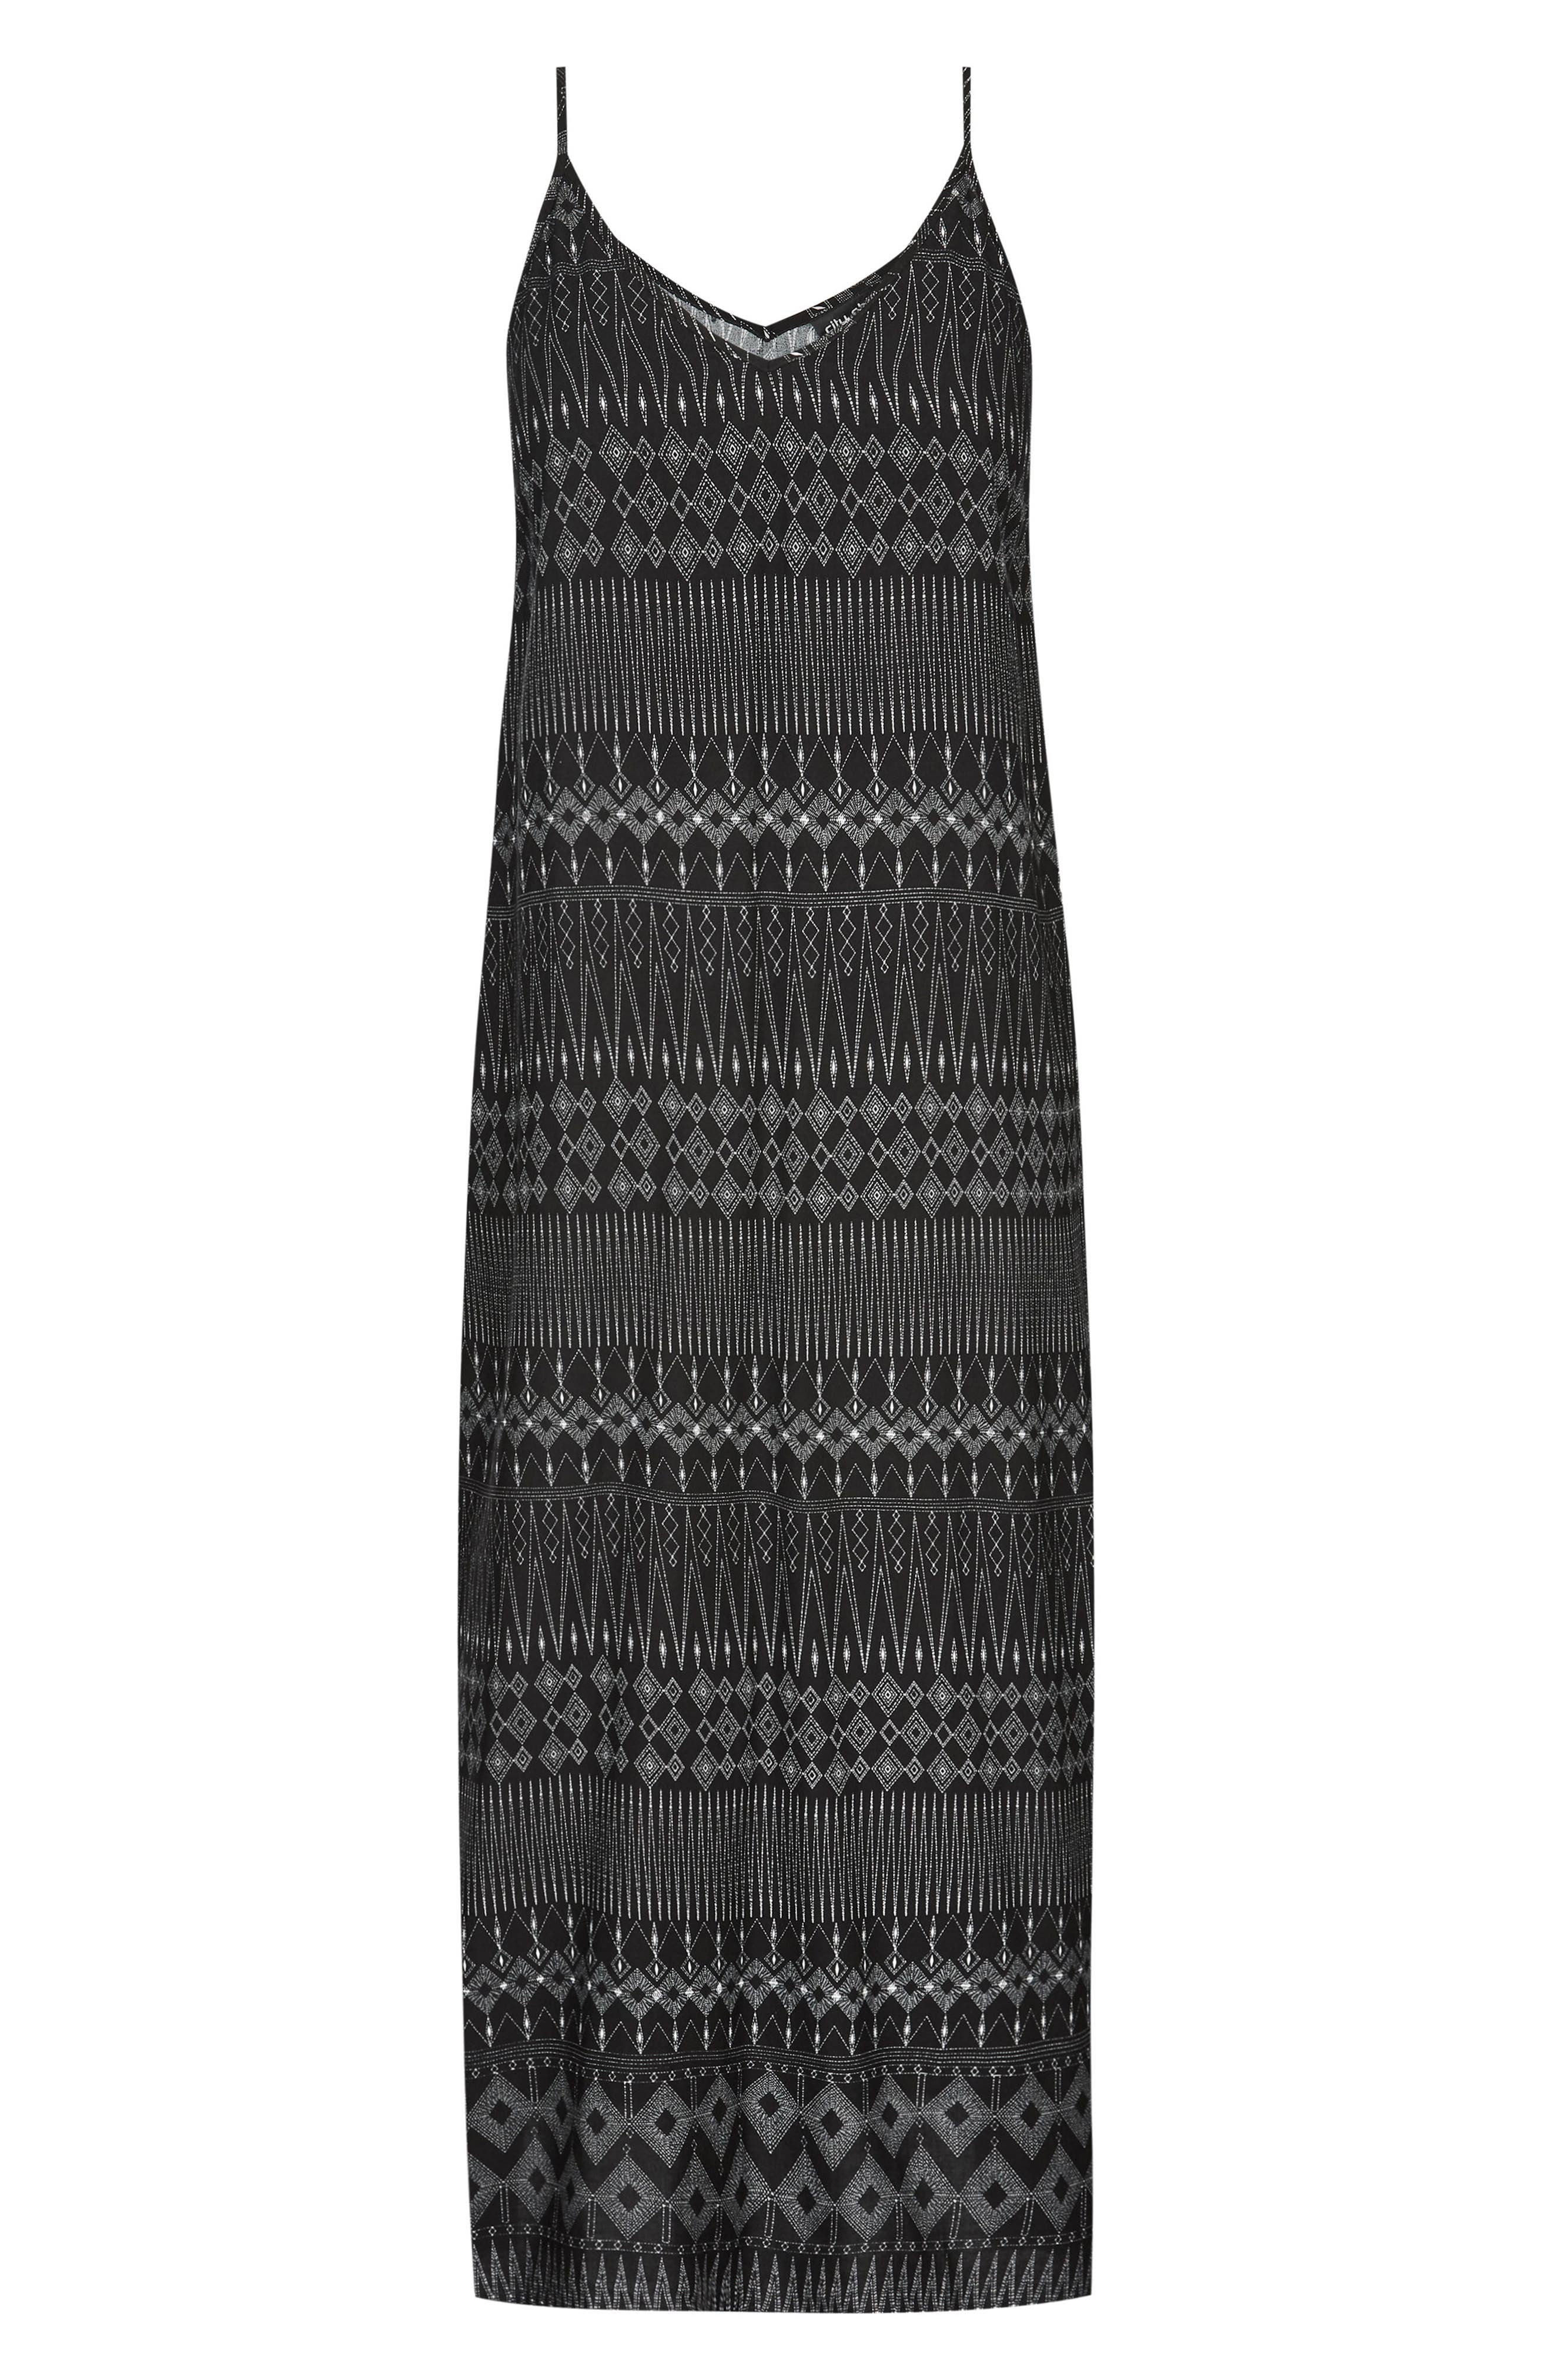 Safari Maxi Dress,                             Alternate thumbnail 3, color,                             BLACK PRINT